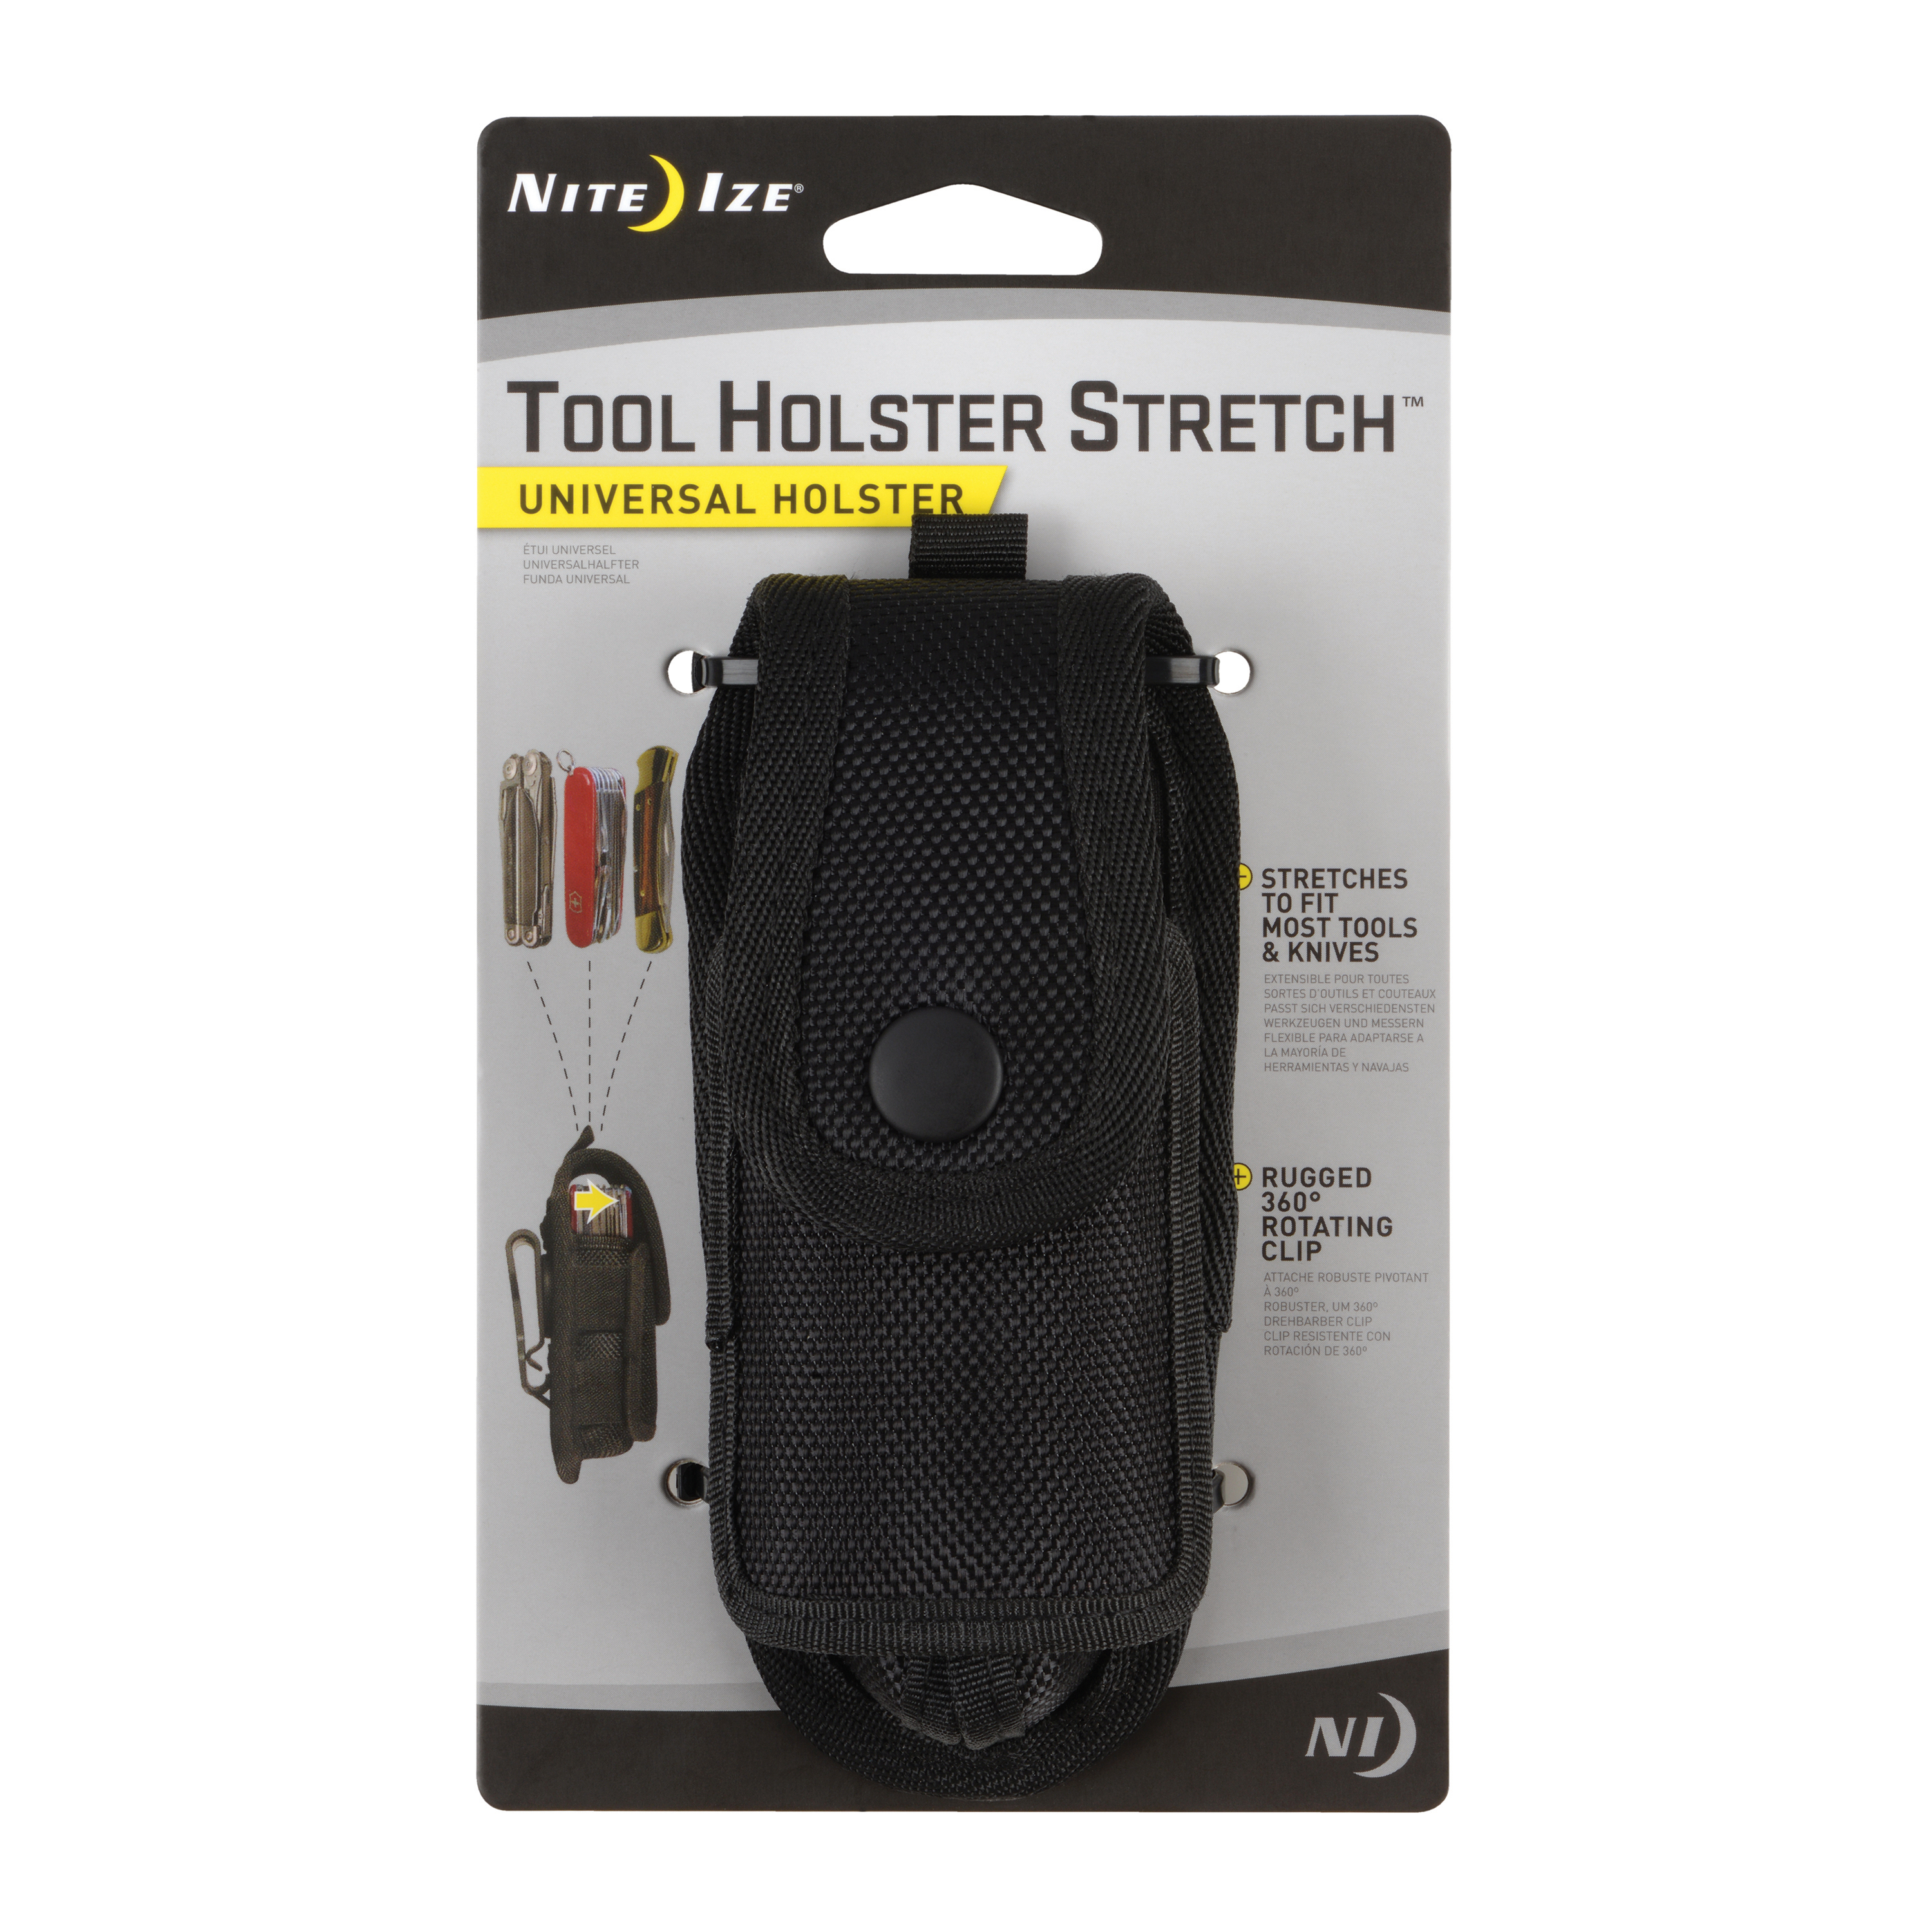 Packing image for Tool Holster Stretch™ Universal Holster